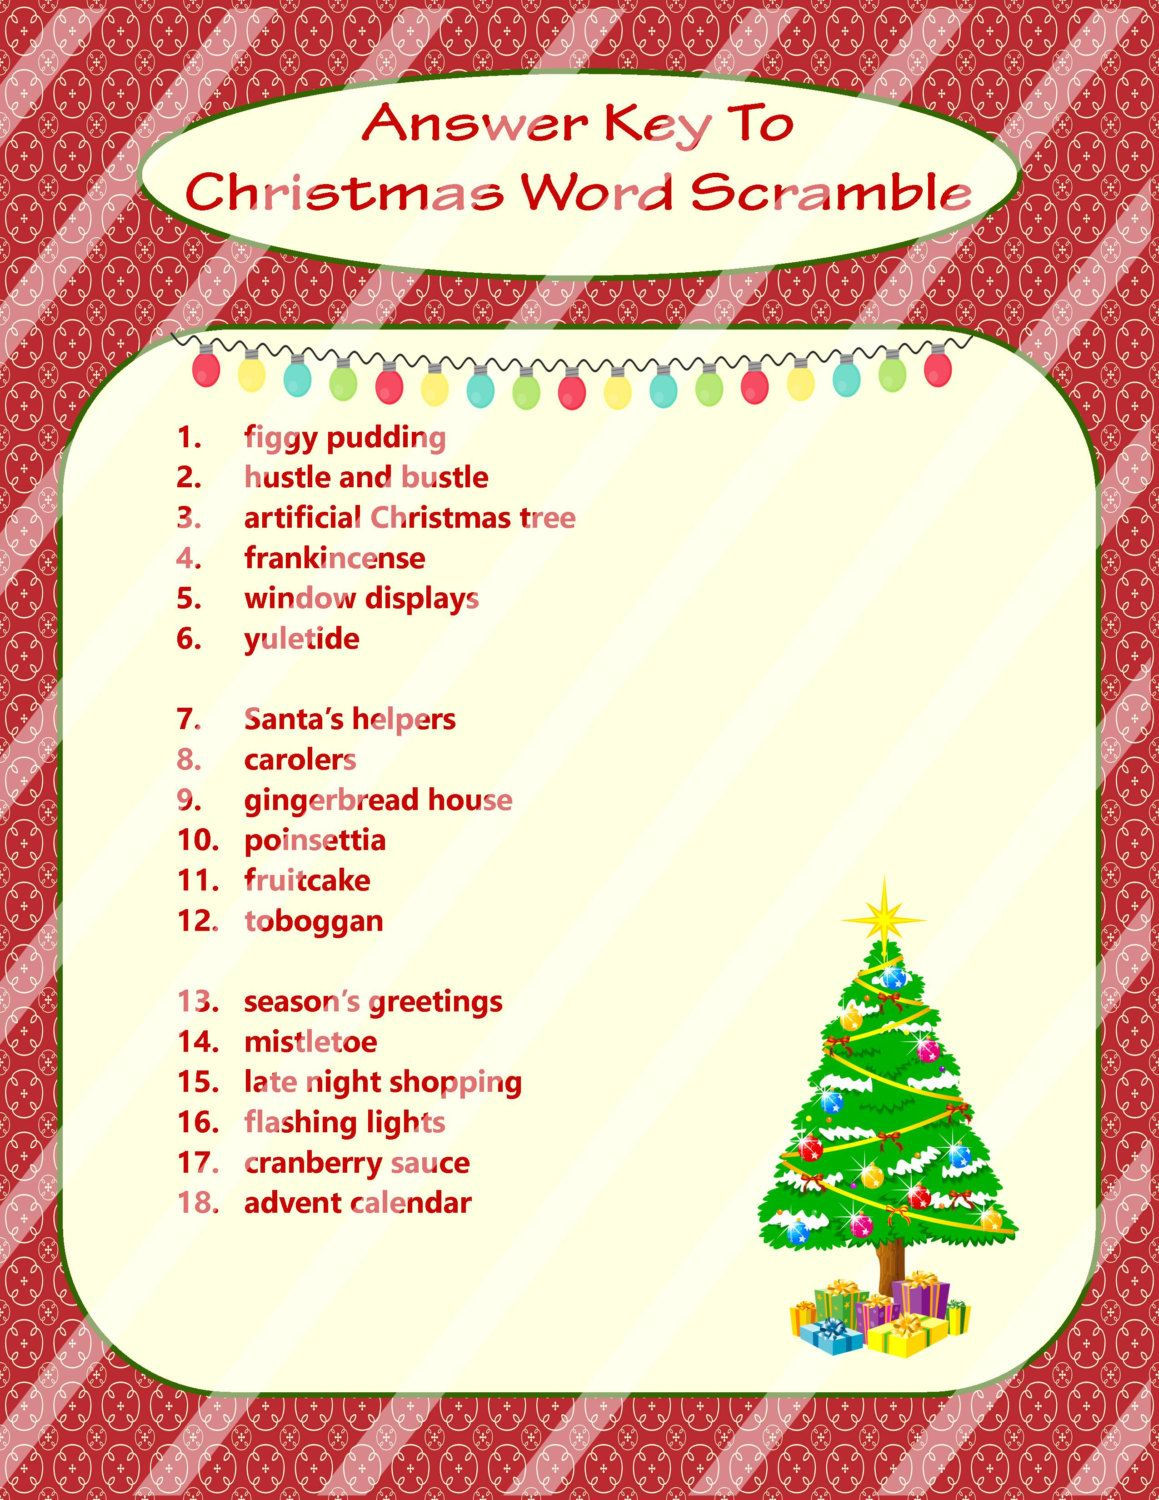 Christmas Word Scramble Printable Christmas Game Diy